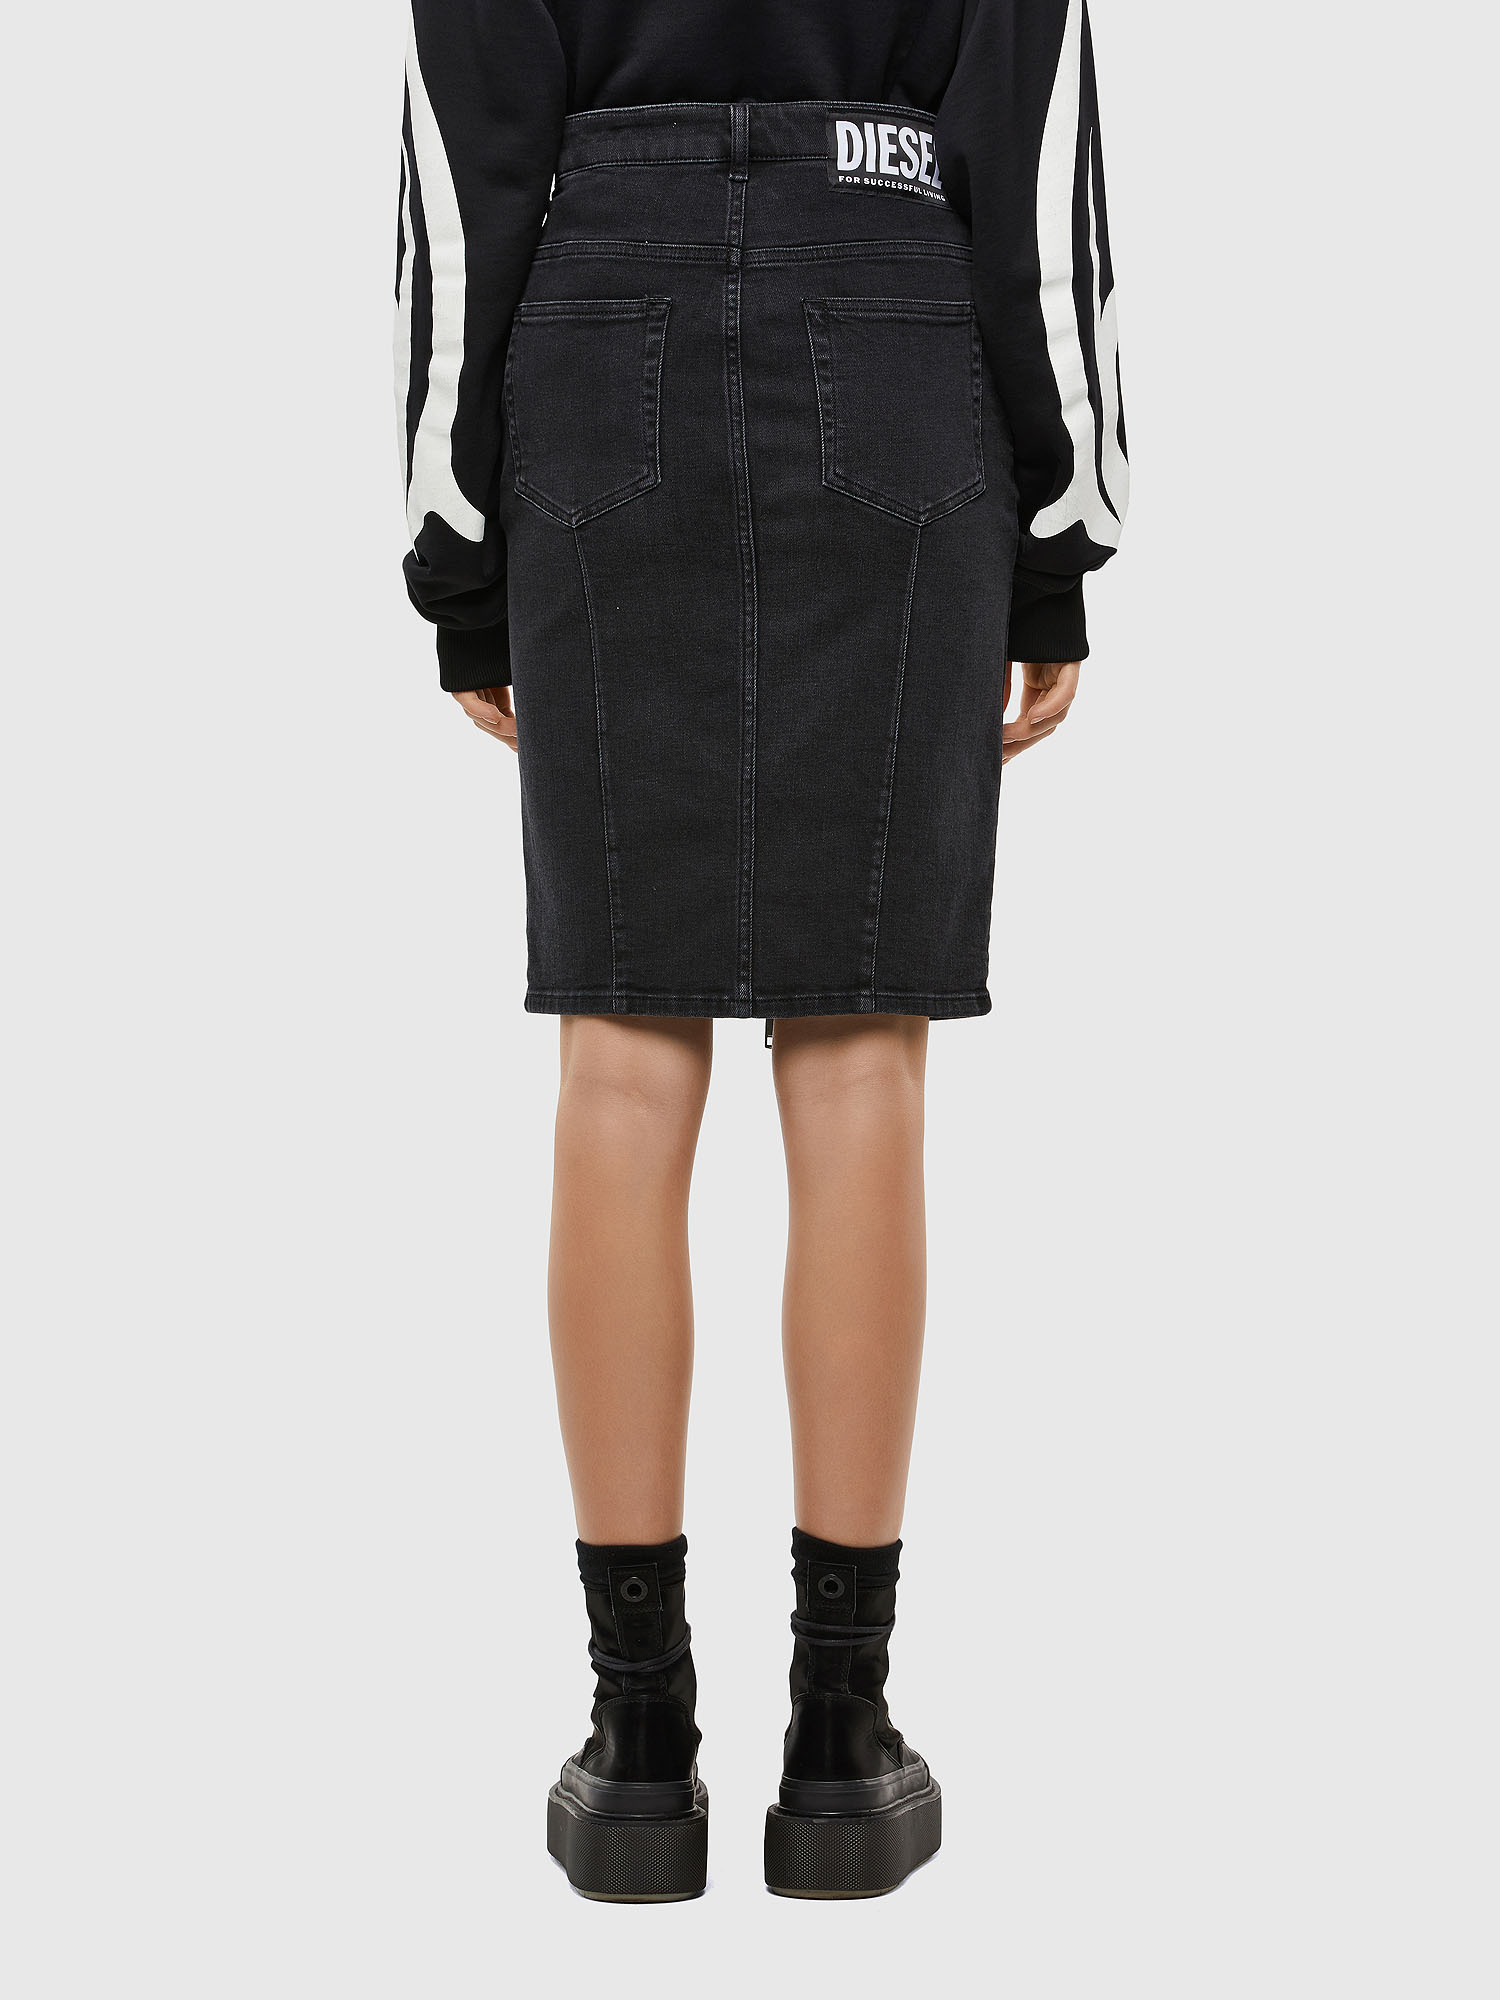 Diesel - DE-PENCIL-ZIP,  - Skirts - Image 2